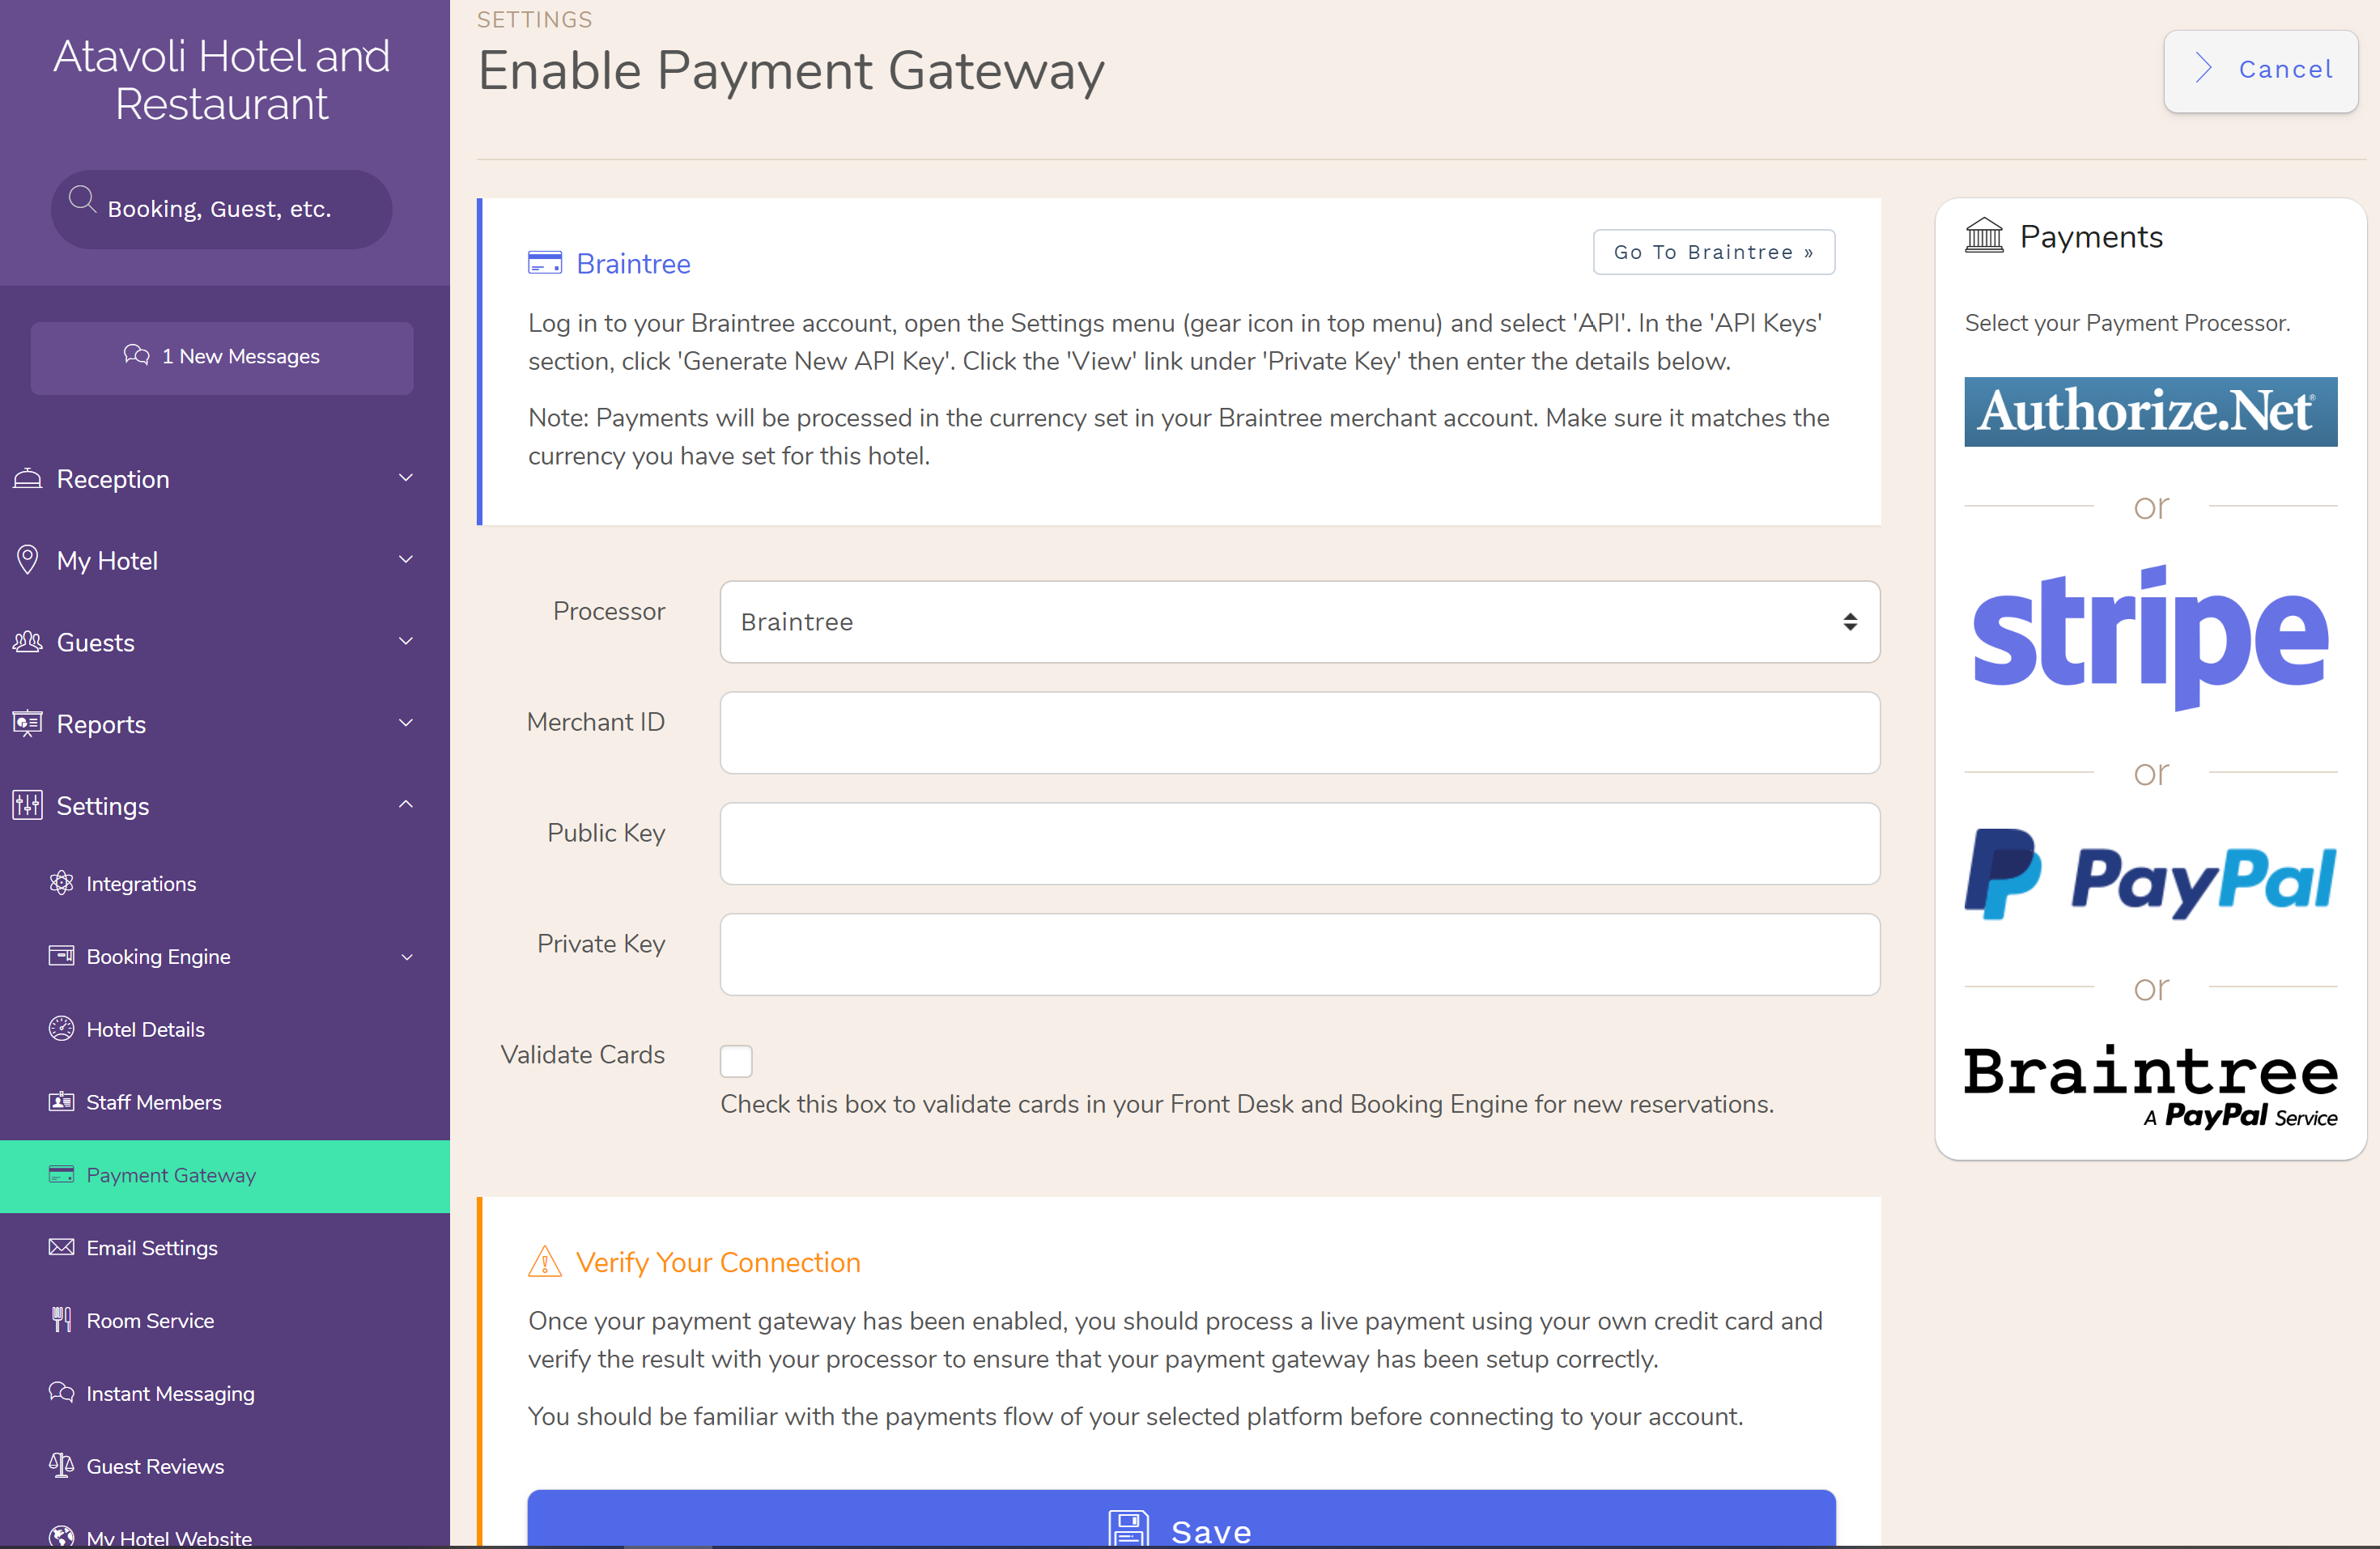 How to Enable Hotel Payment Gateway and Accept Credit Cards